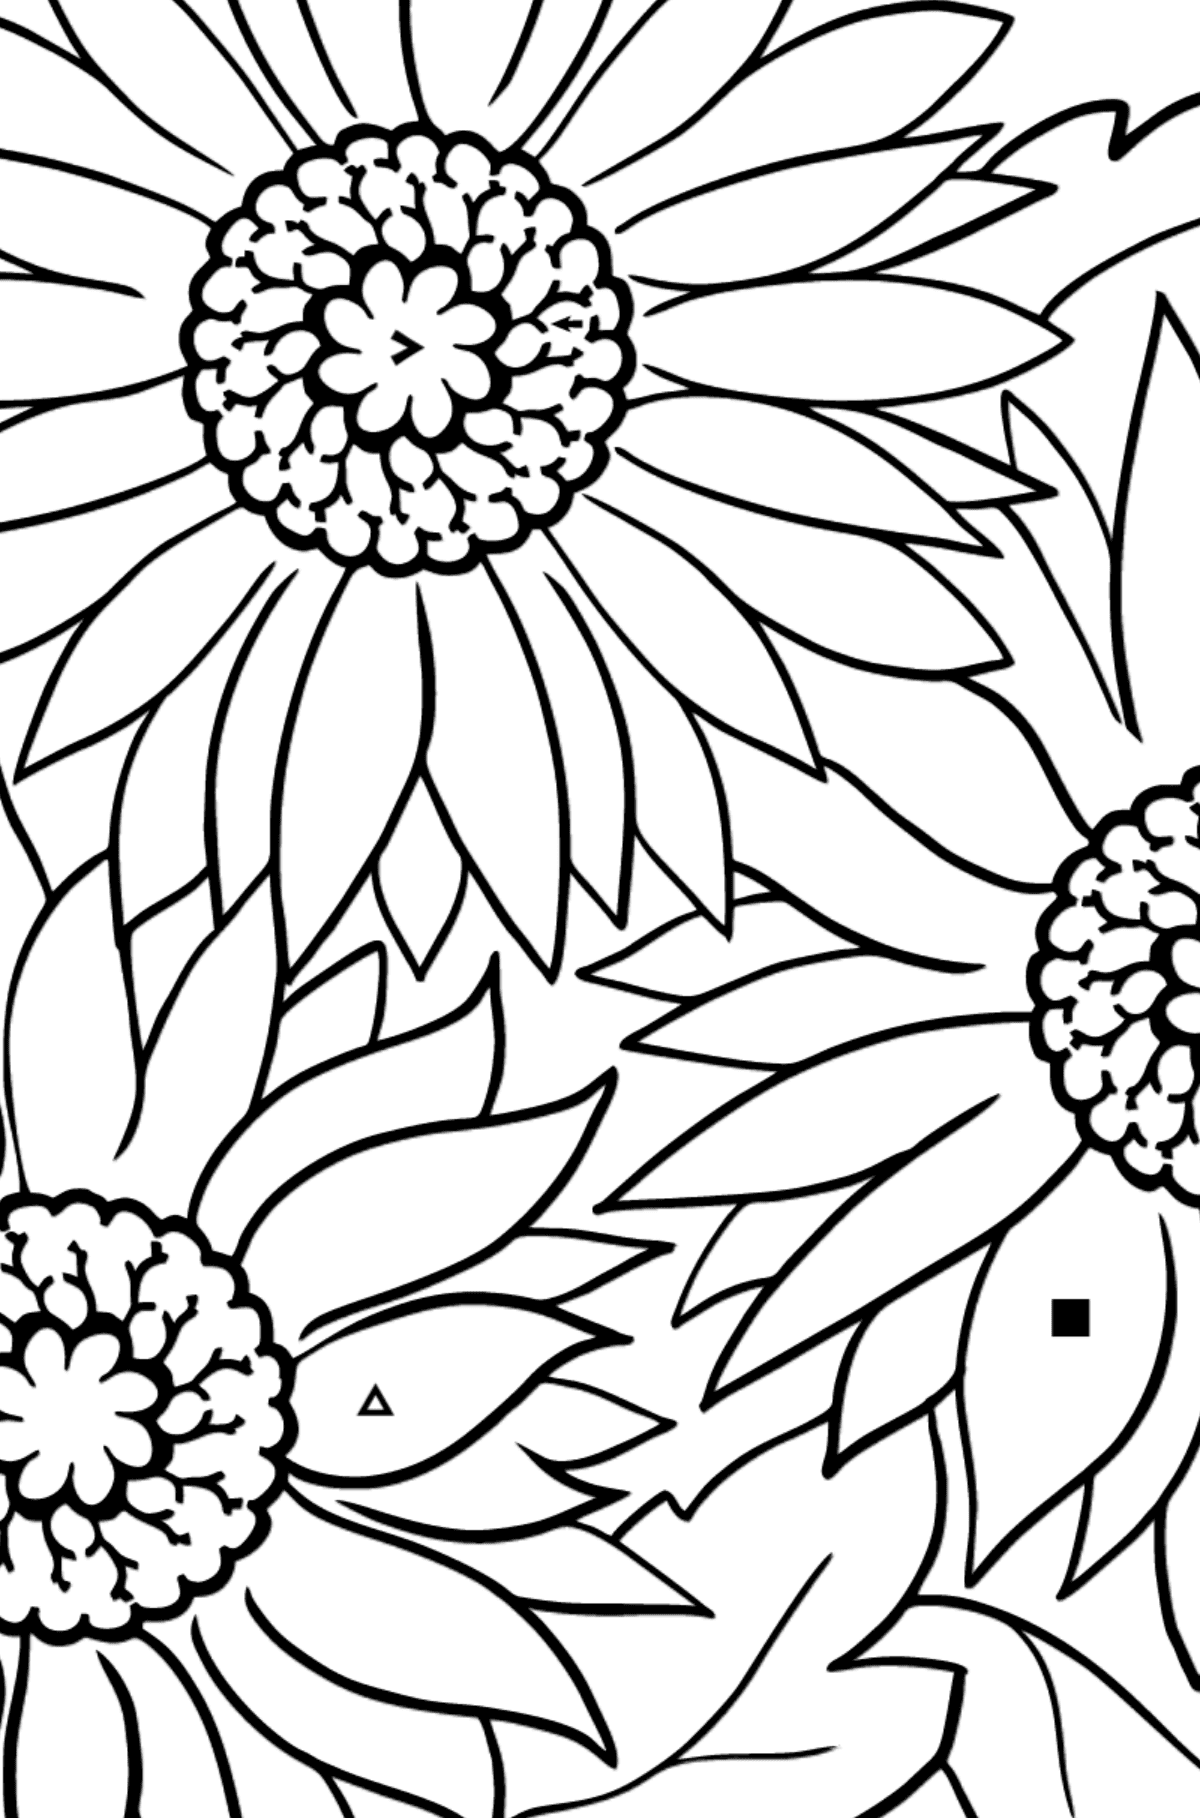 Coloring Flowers for the Youngest Children - Pink Gerbera - Coloring by Symbols for Kids